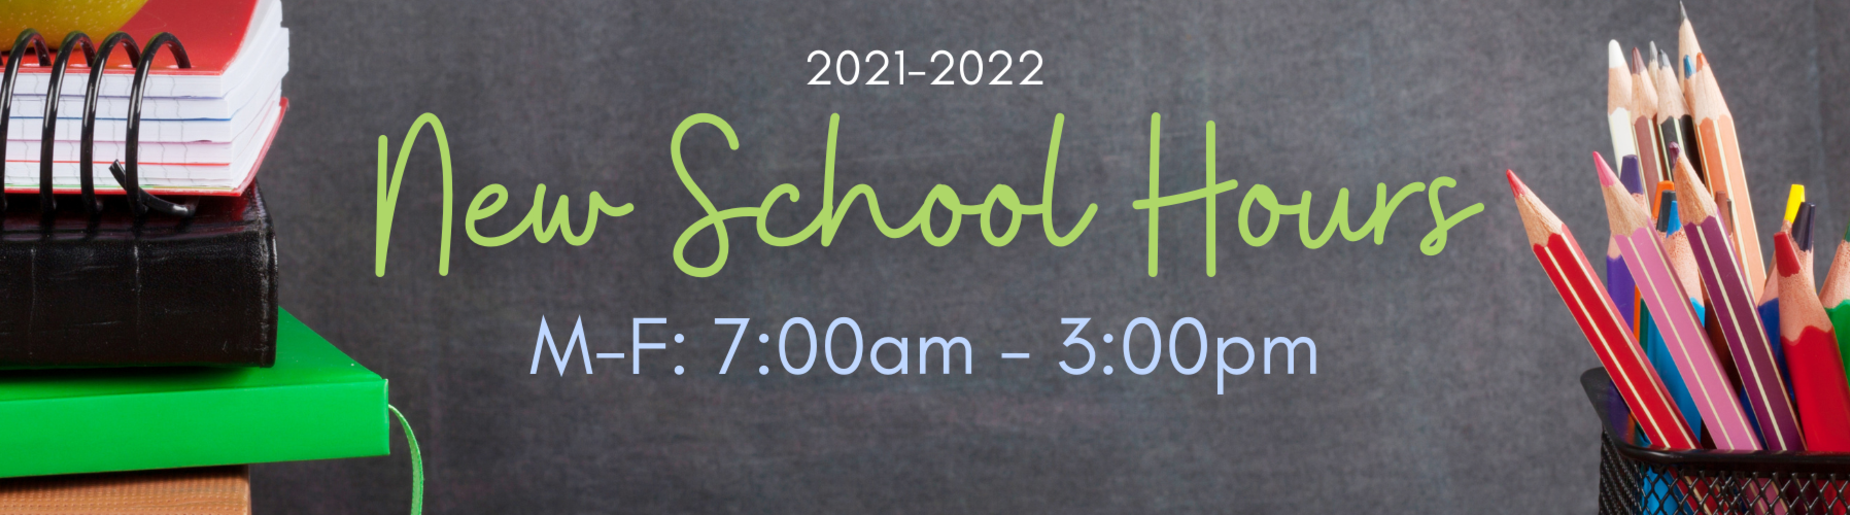 New school hours display. 7am-3pm